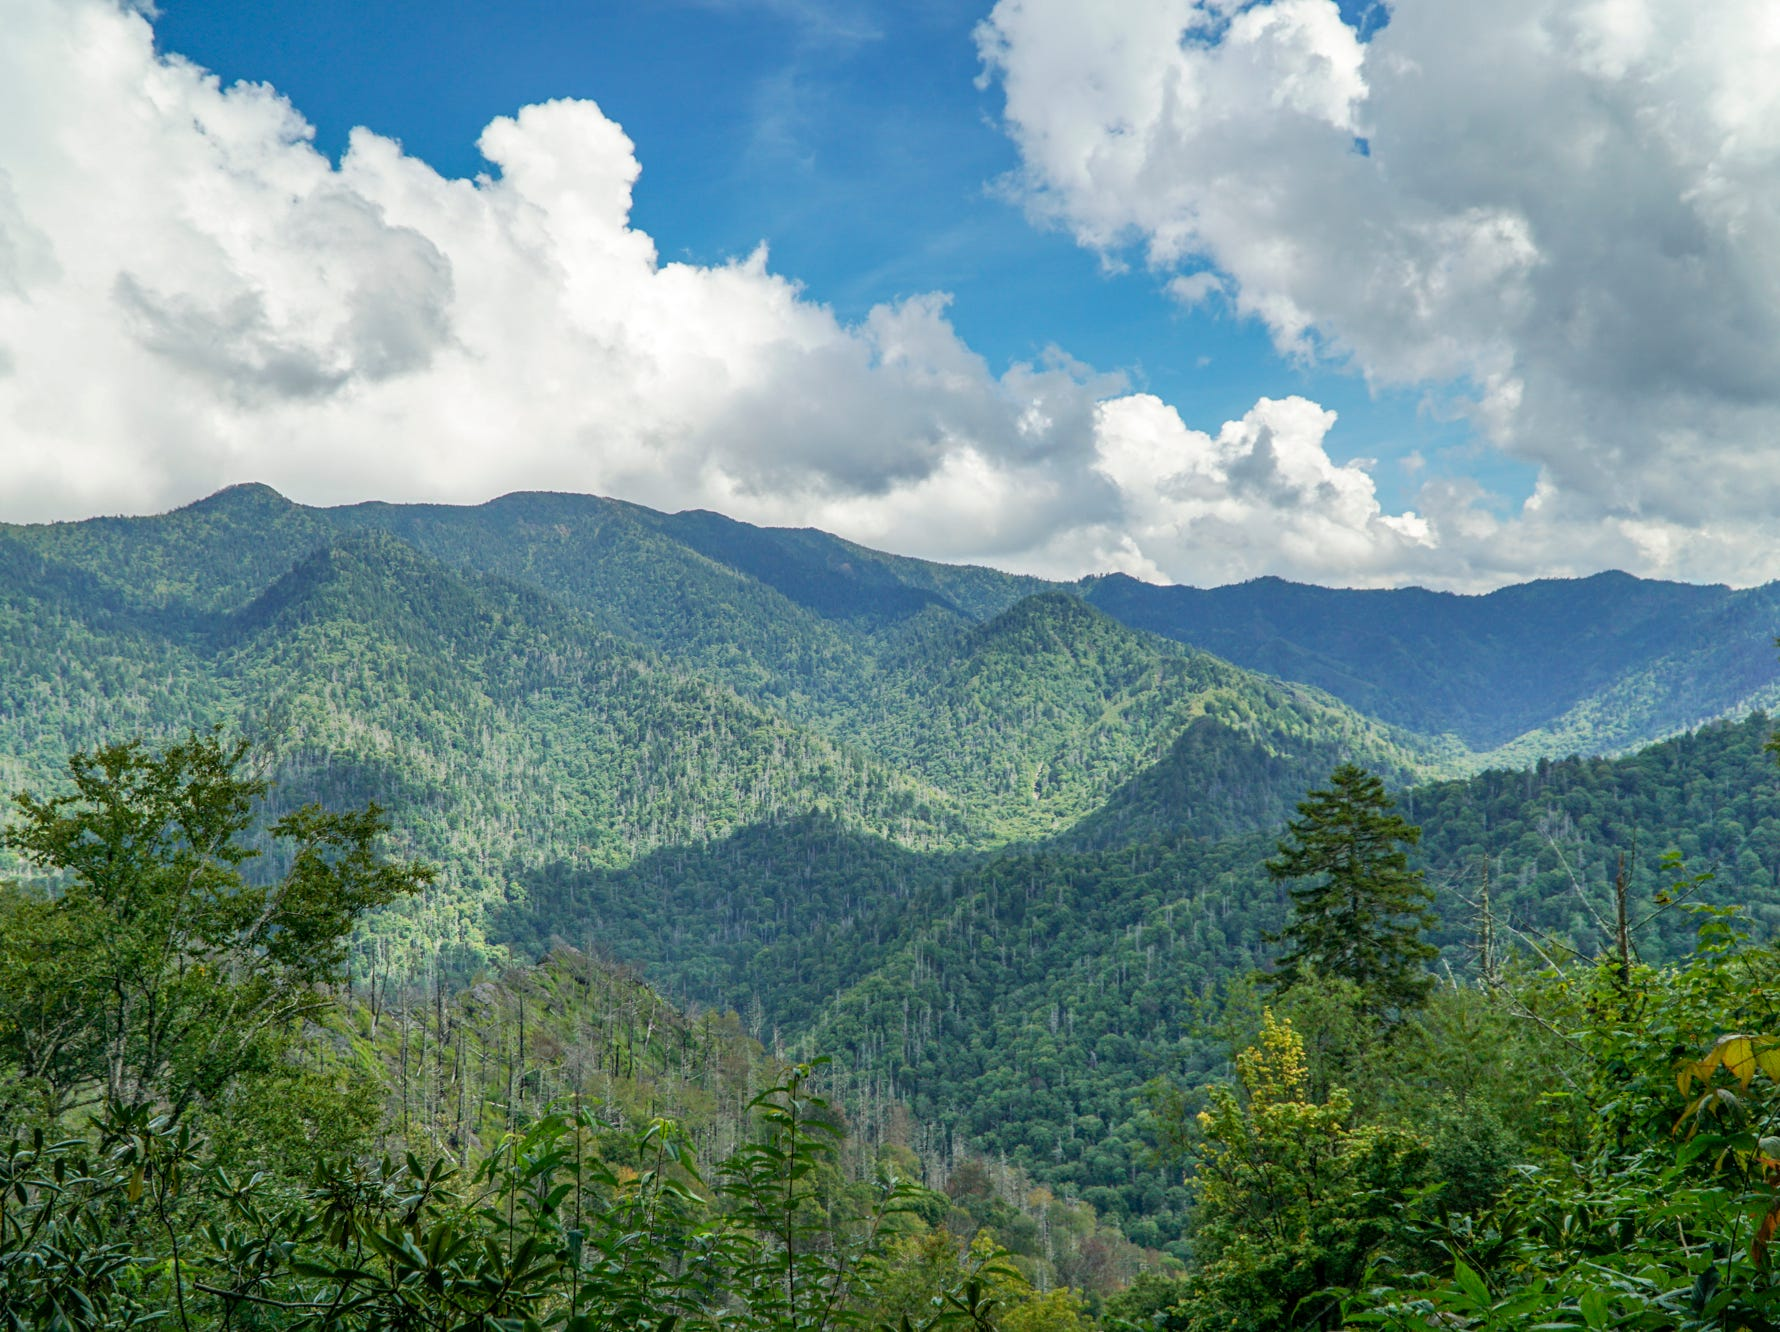 Mountain views from the new Chimney Tops trail viewing area could offer hikers a bevy of fall colors by mid-October.